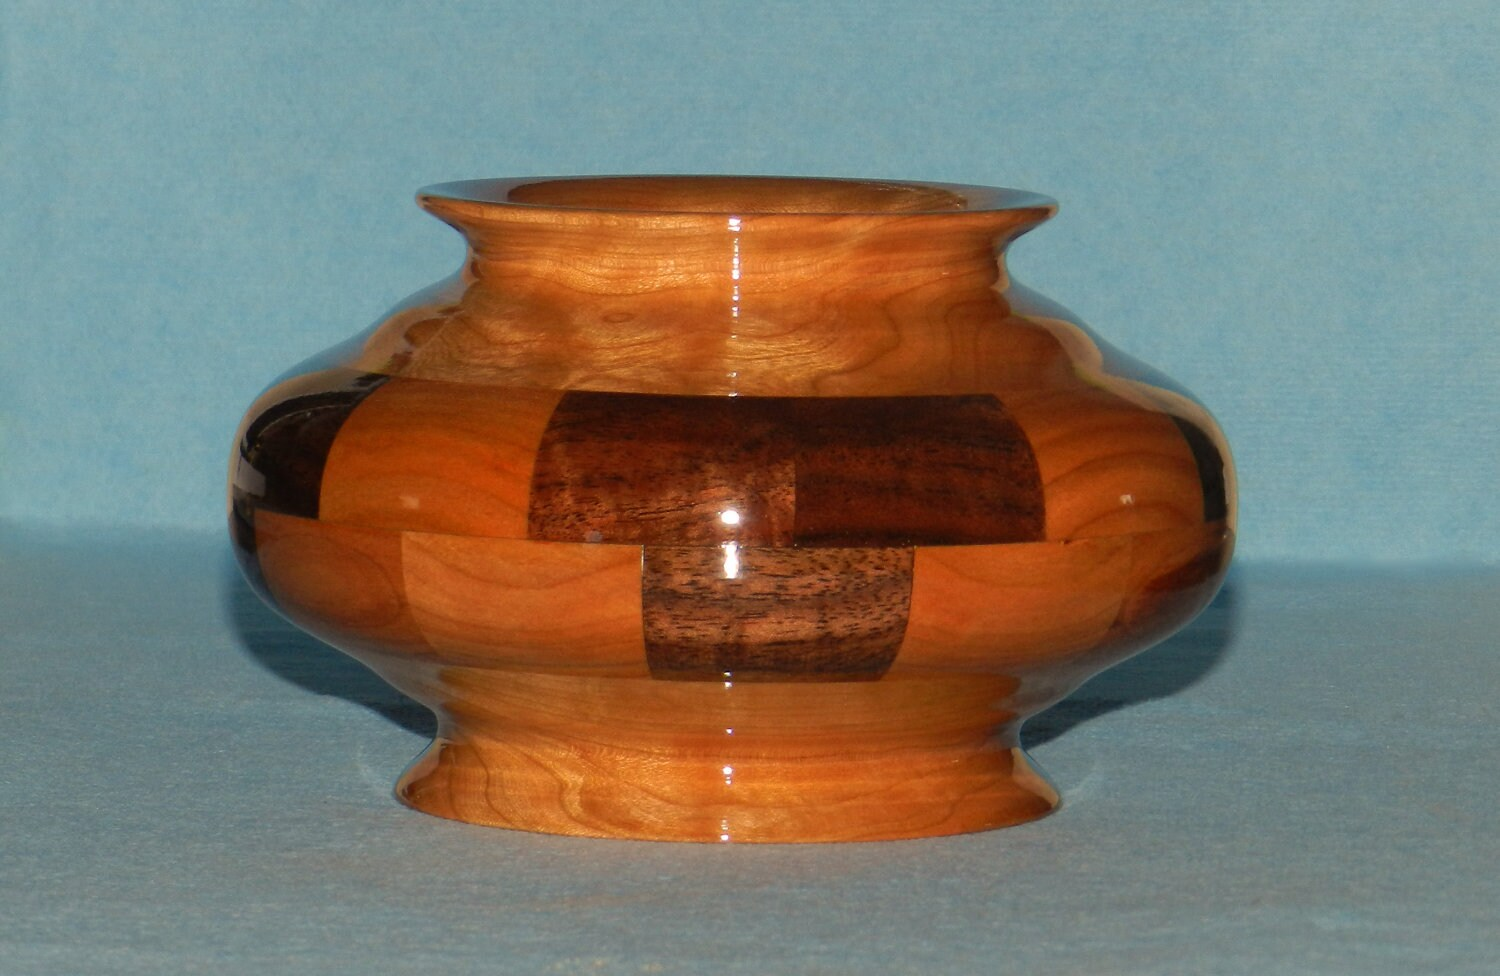 Segmented Bowl No. 153 - ElkCreekWoodTurnings